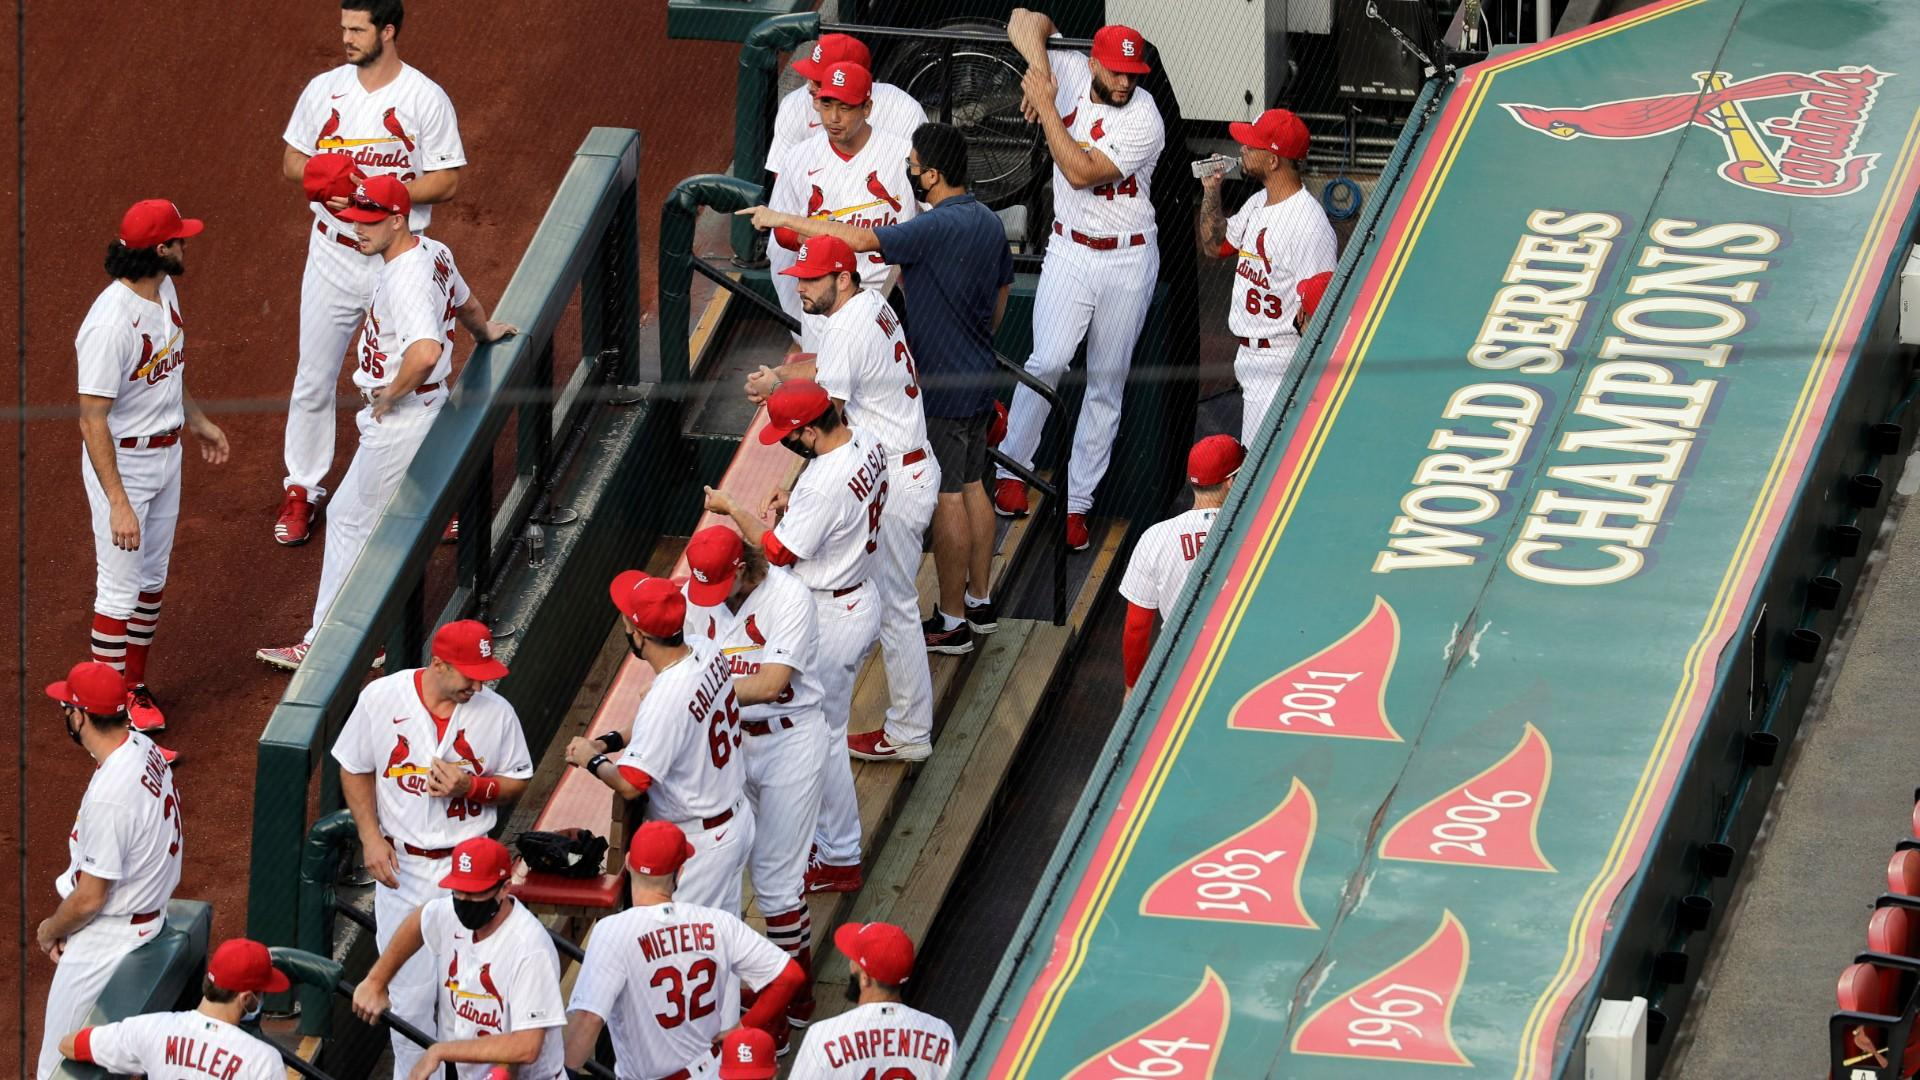 In this July 24, 2020, file photo, members of the St. Louis Cardinals wait to be introduced before the start of a baseball game against the Pittsburgh Pirates in St. Louis. (AP Photo / Jeff Roberson, File)